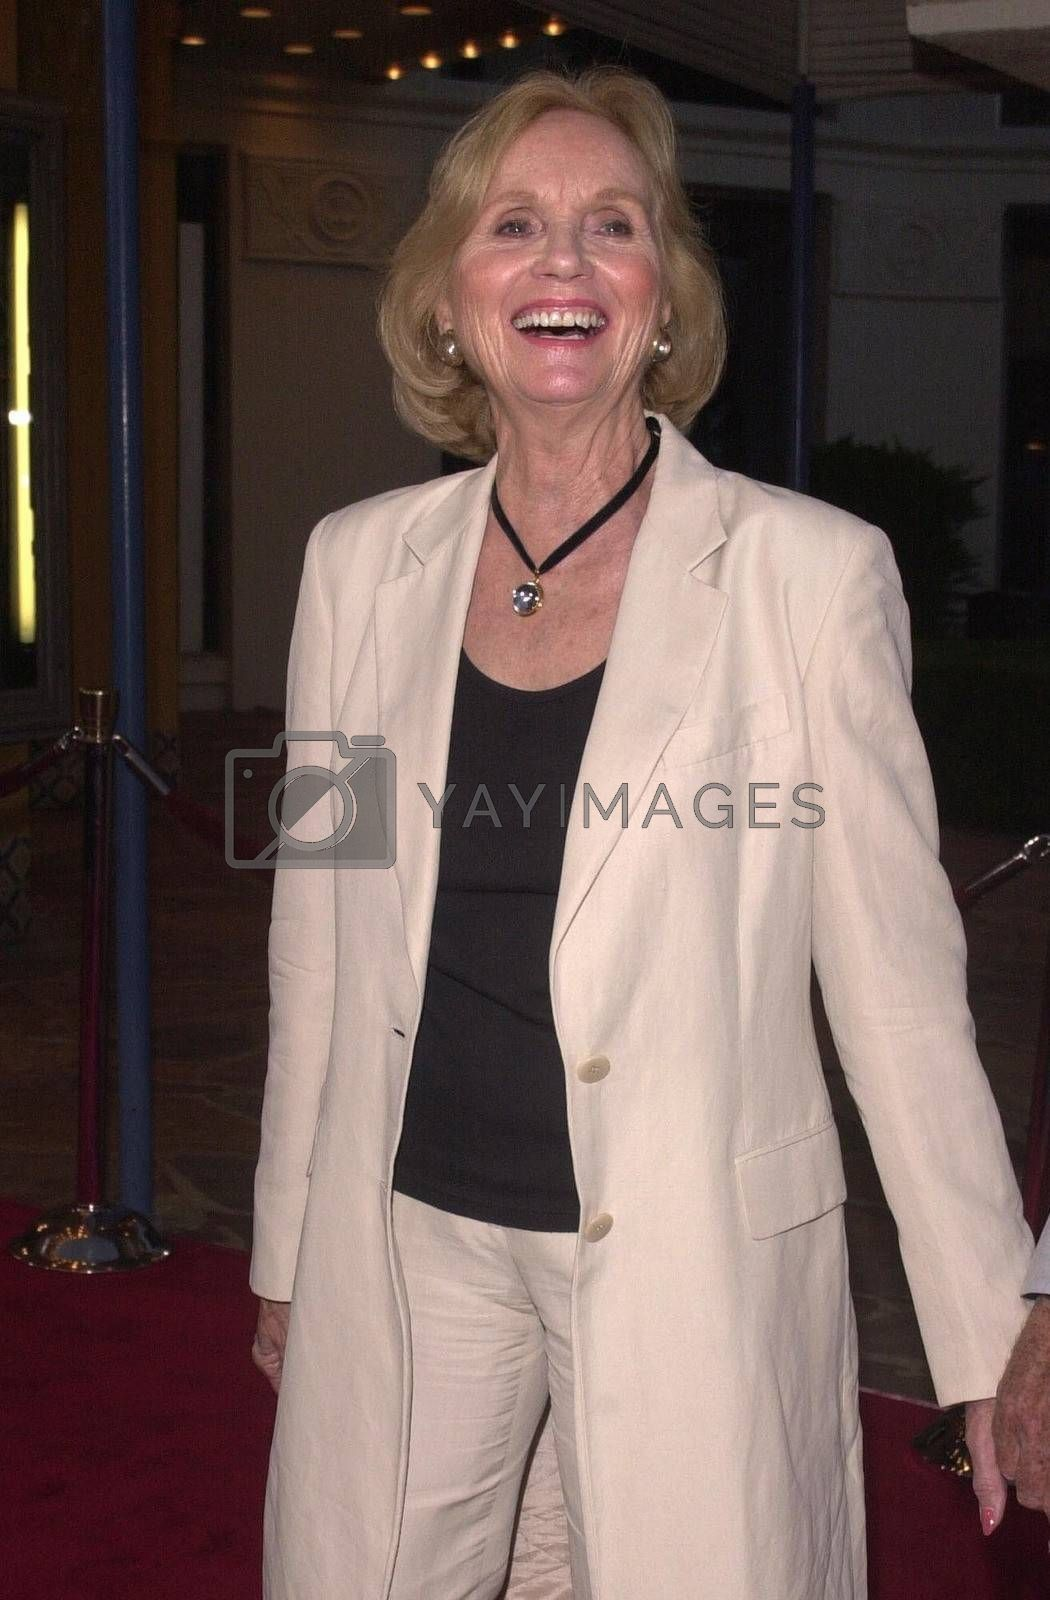 """Eva Marie Saint at the premiere of """"Space Cowboys"""" in Westwood. 08-01-00"""